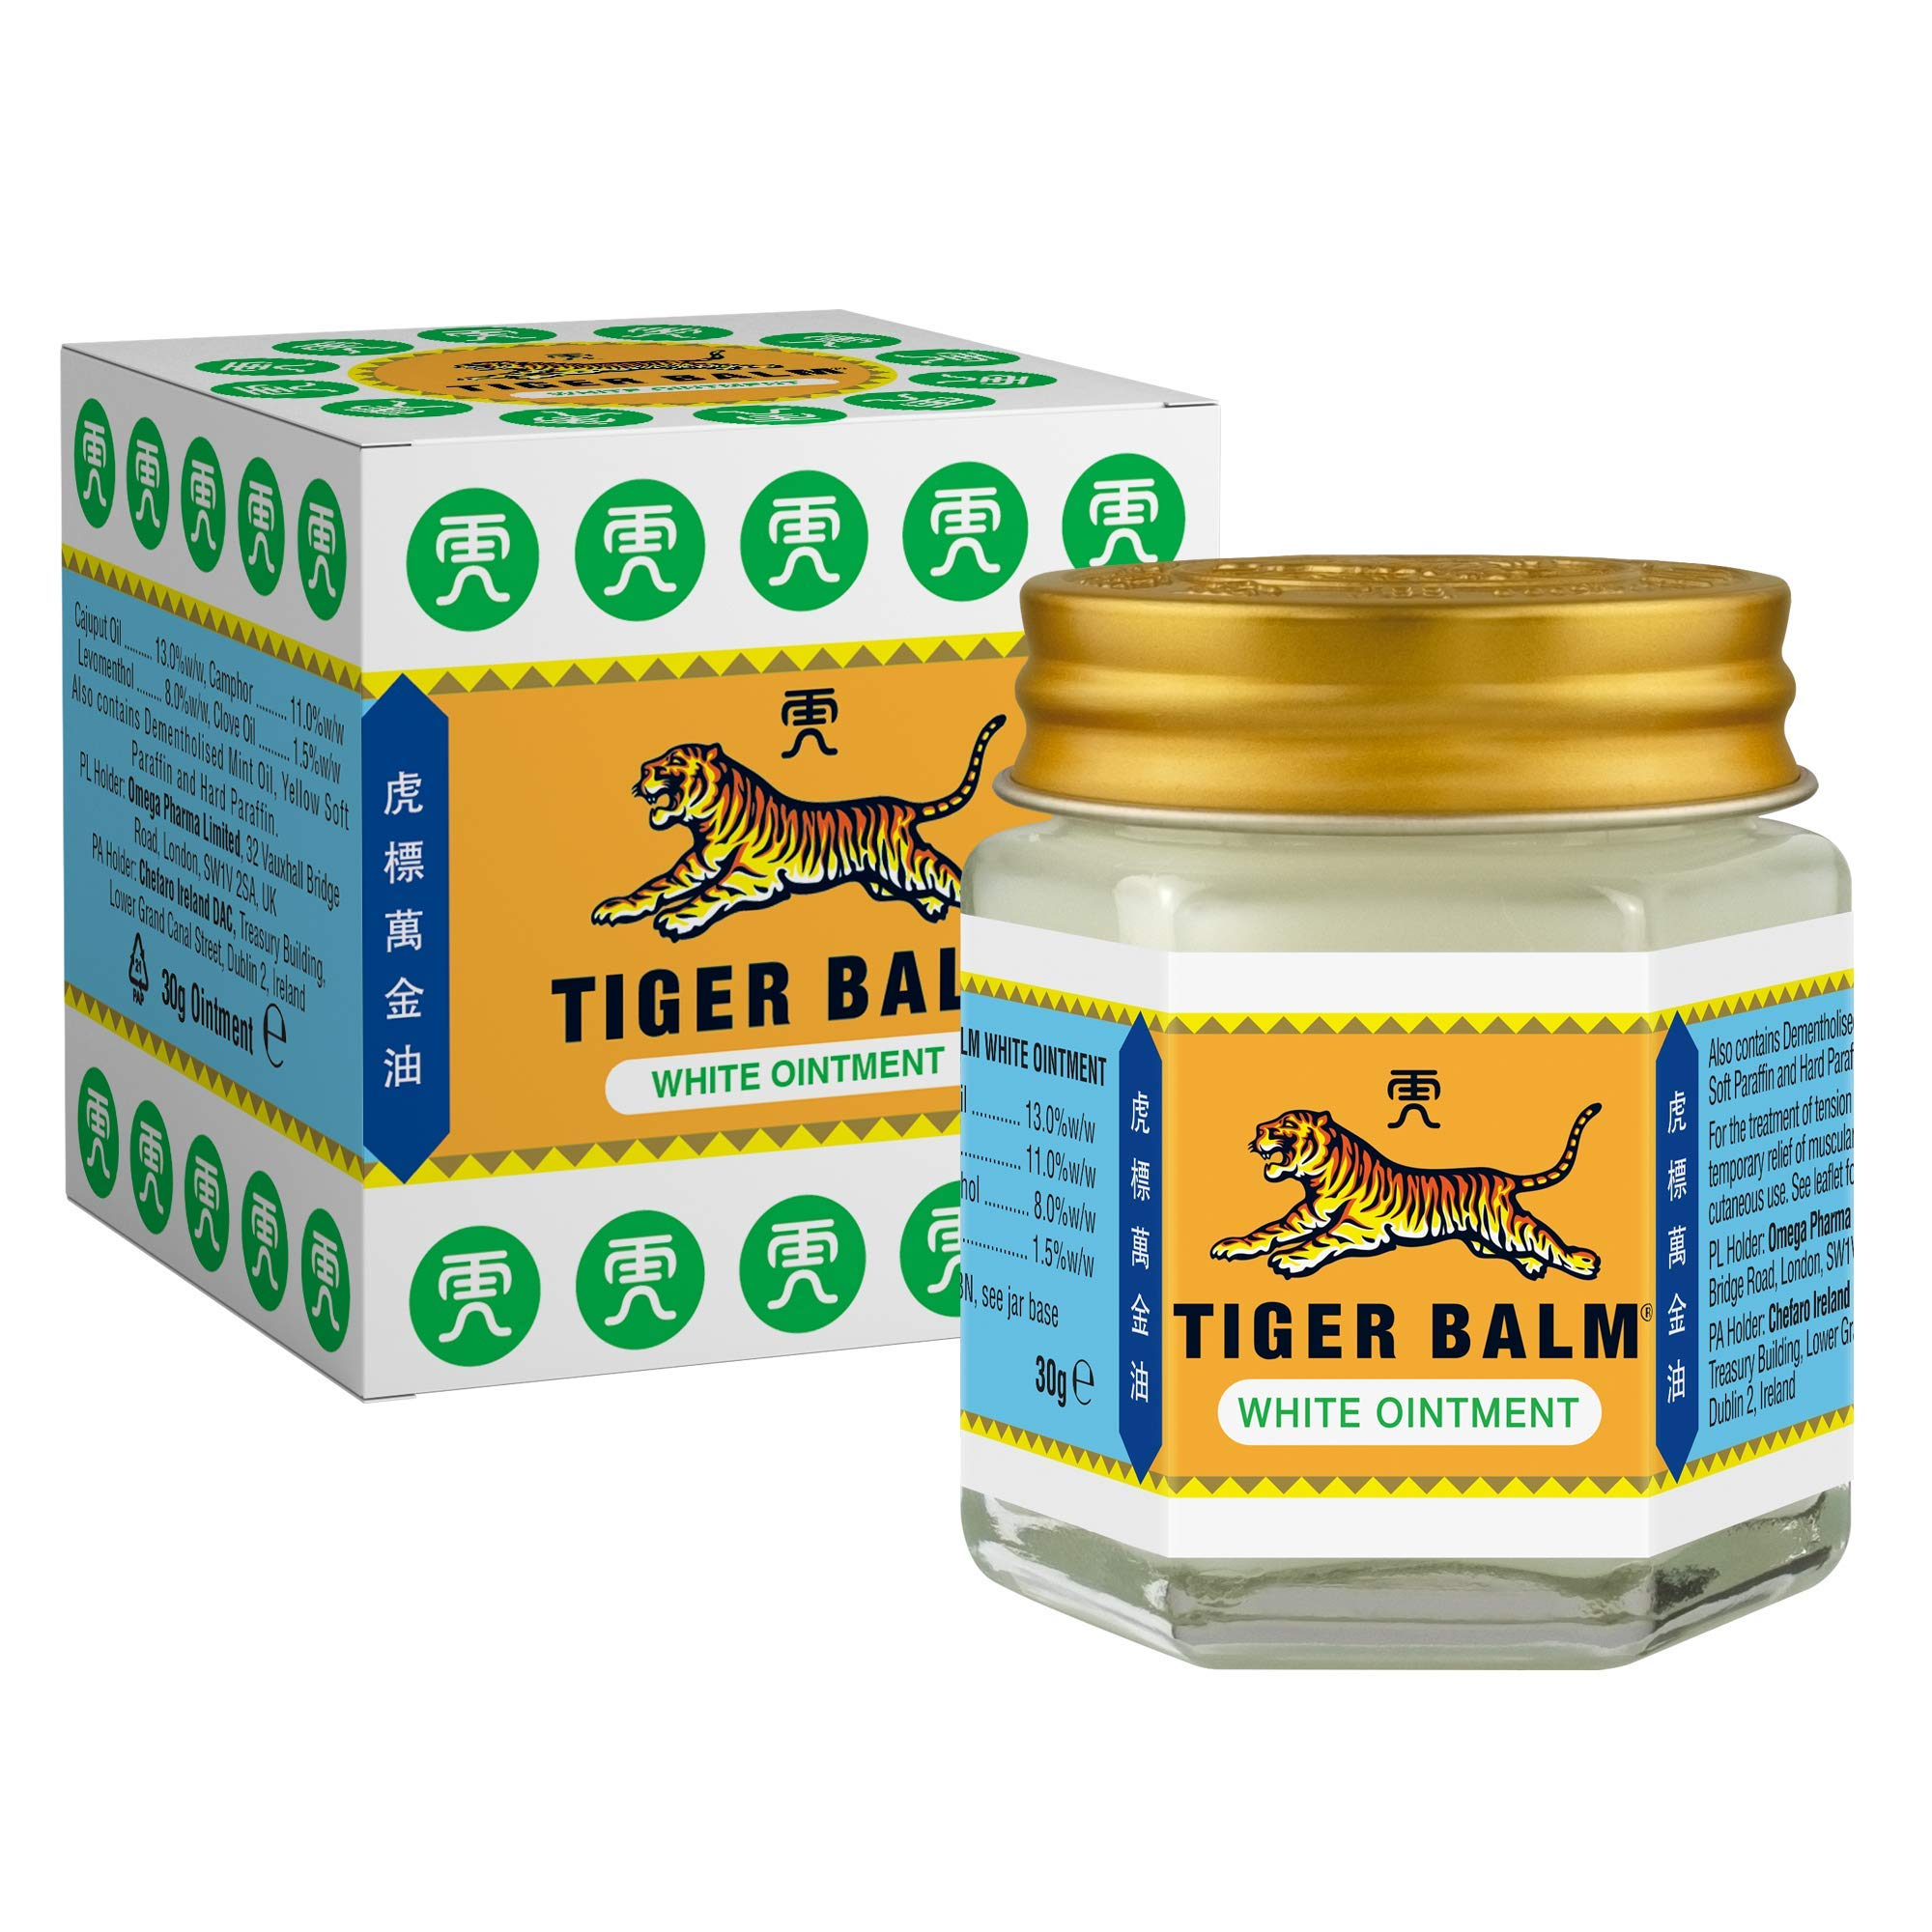 Tiger Balm White Ointment 30 g - For the treatment of tension headaches and temporary relief of muscular aches and pains